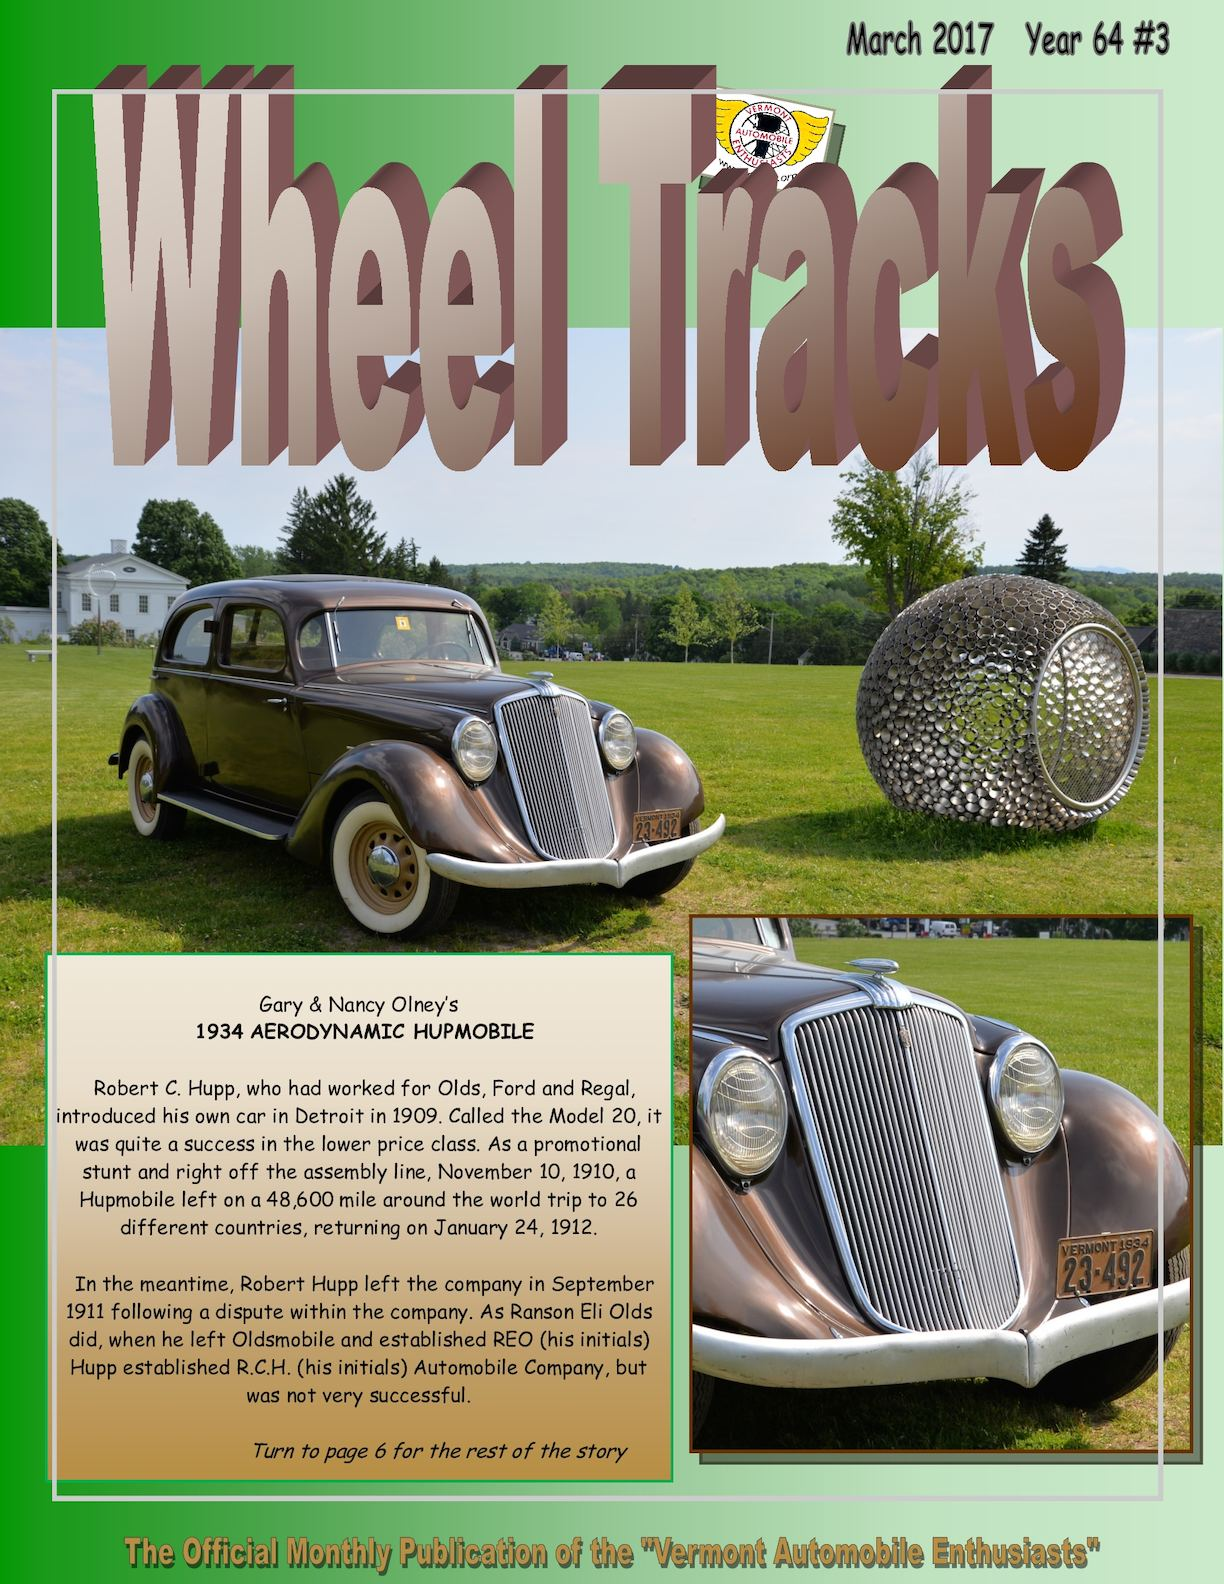 Calamo Wheel Tracks March 2017 Vermont Auto Enthusiasts 1941 Oldsmobile Club Coupe